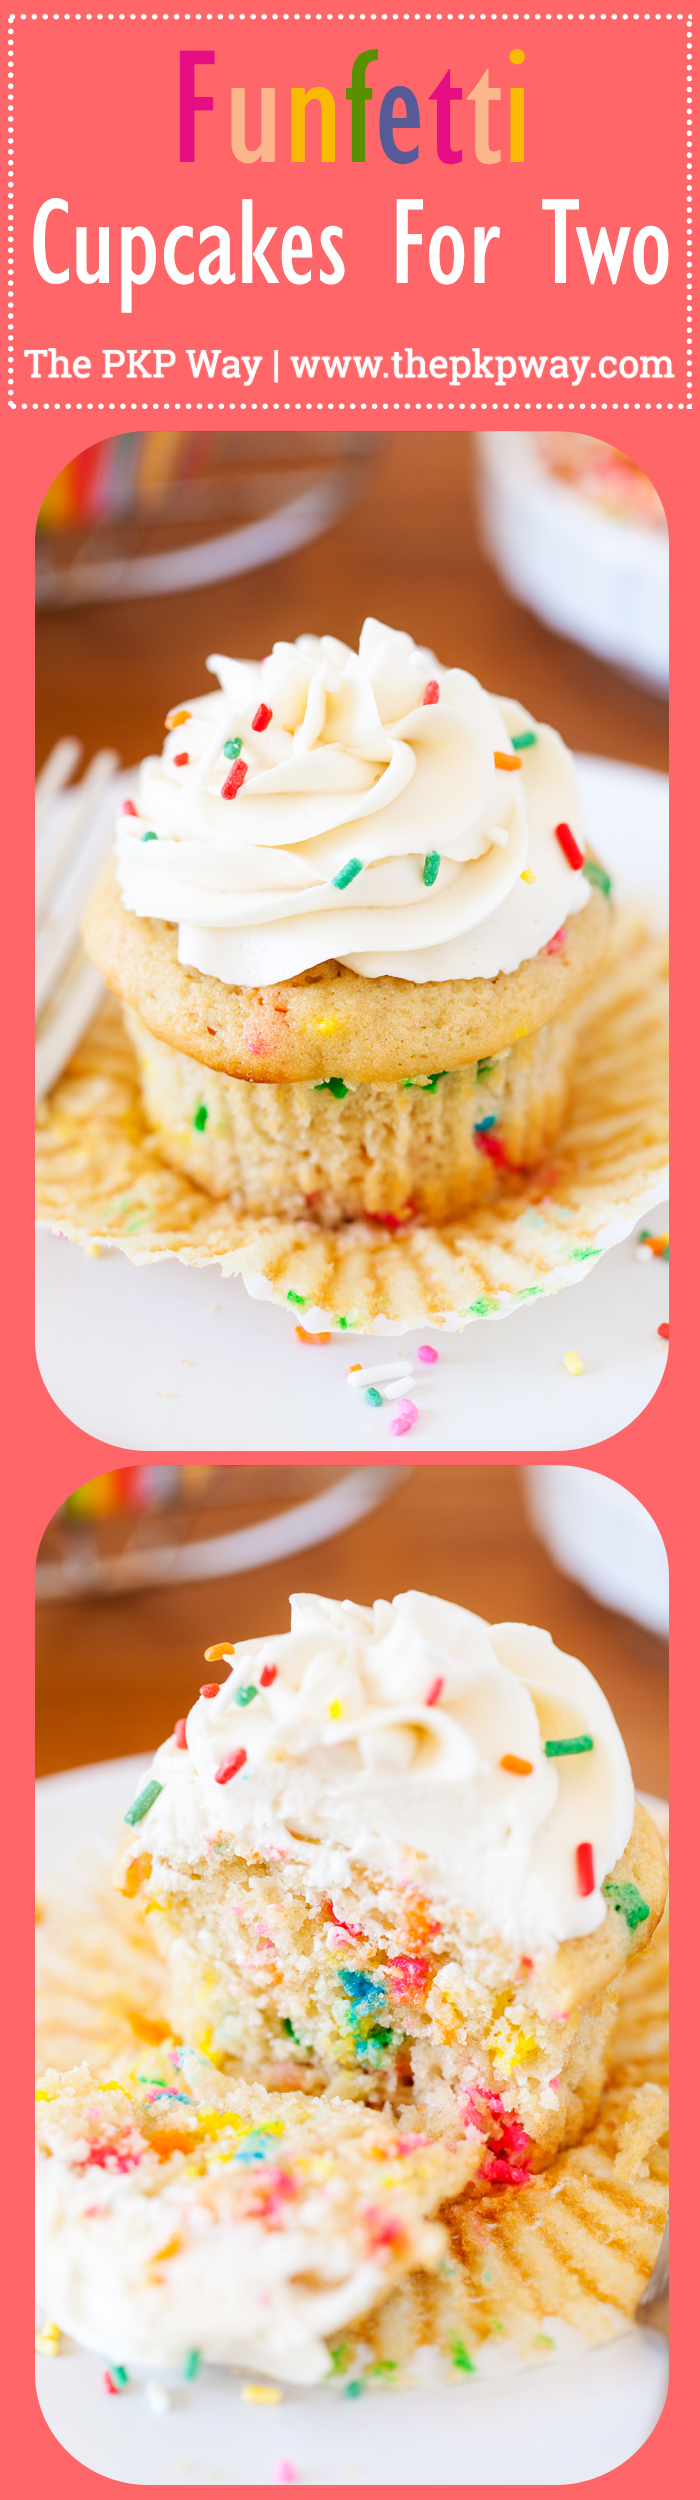 These Funfetti Cupcakes for Two are soft, fluffy, and perfect for moments when you just have to have a cupcake! Enjoy one and share the other (or save it for later).